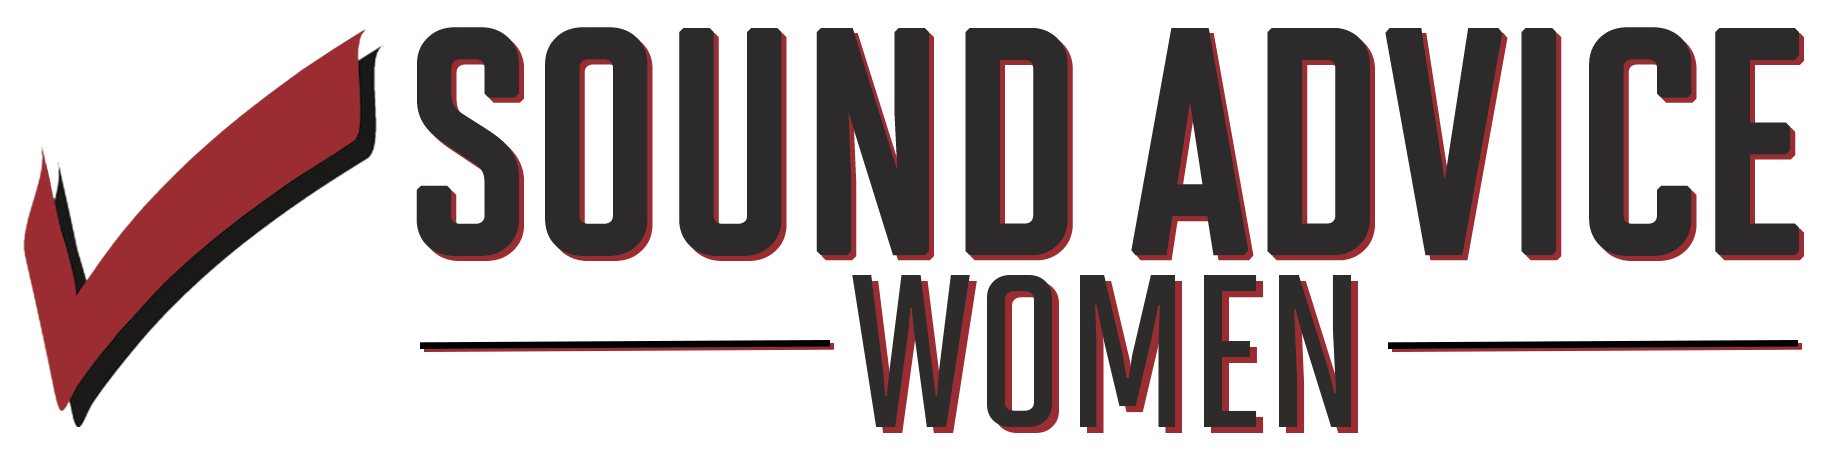 SA-Women-Red-Logo